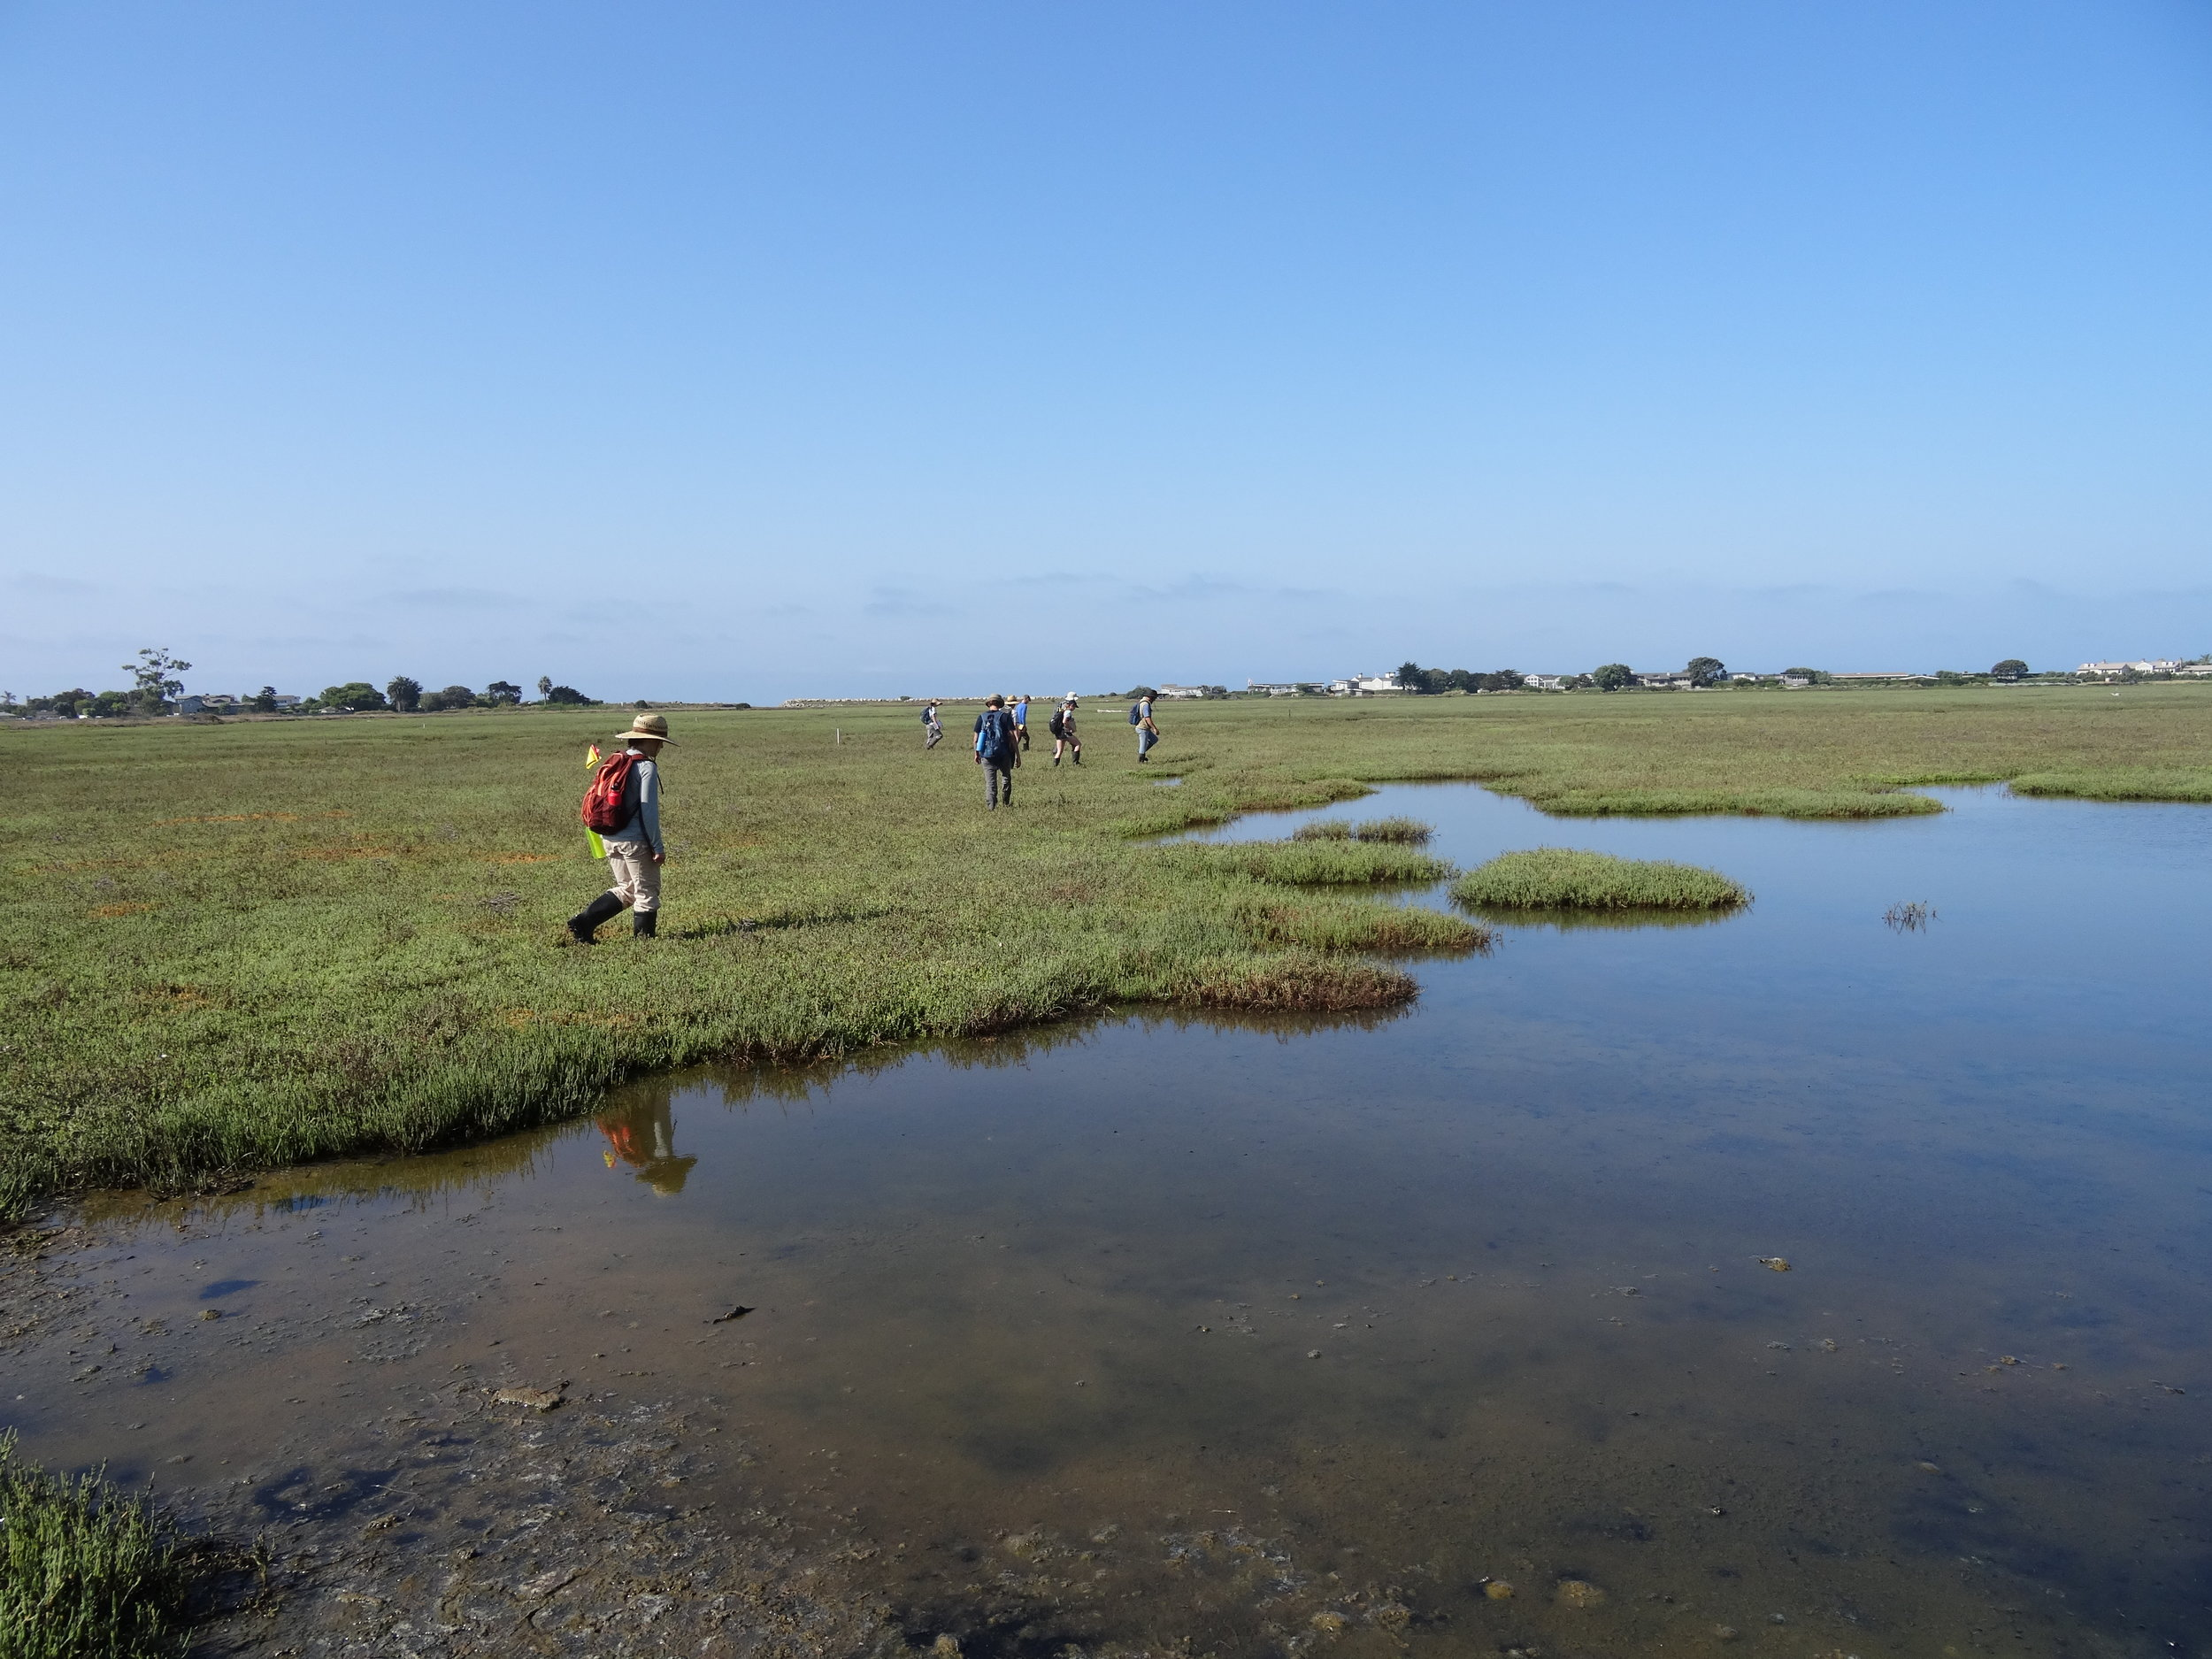 CIR staff and UCSB Coastal Fund-sponsored interns spread out into a line and walked the entire length of the marsh.